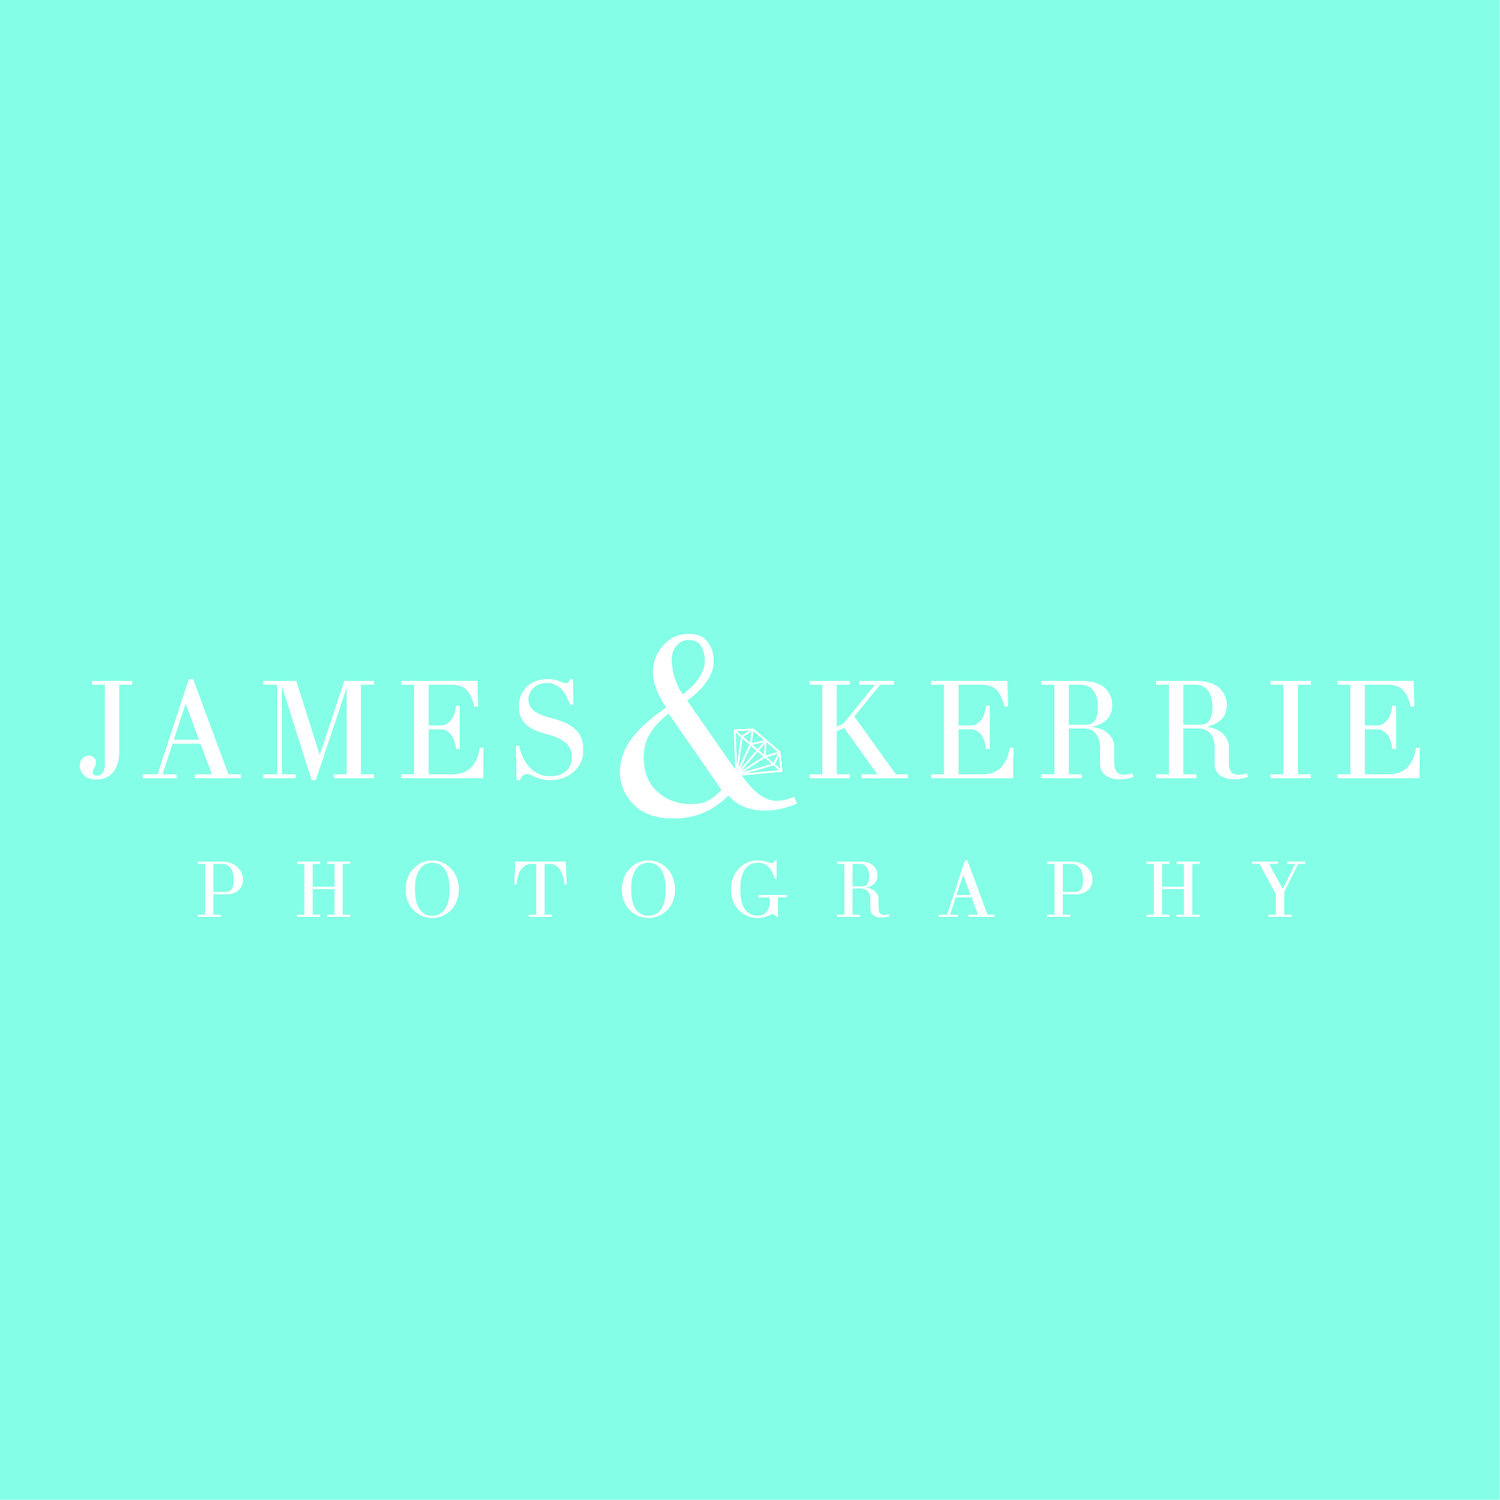 James & Kerrie Photography